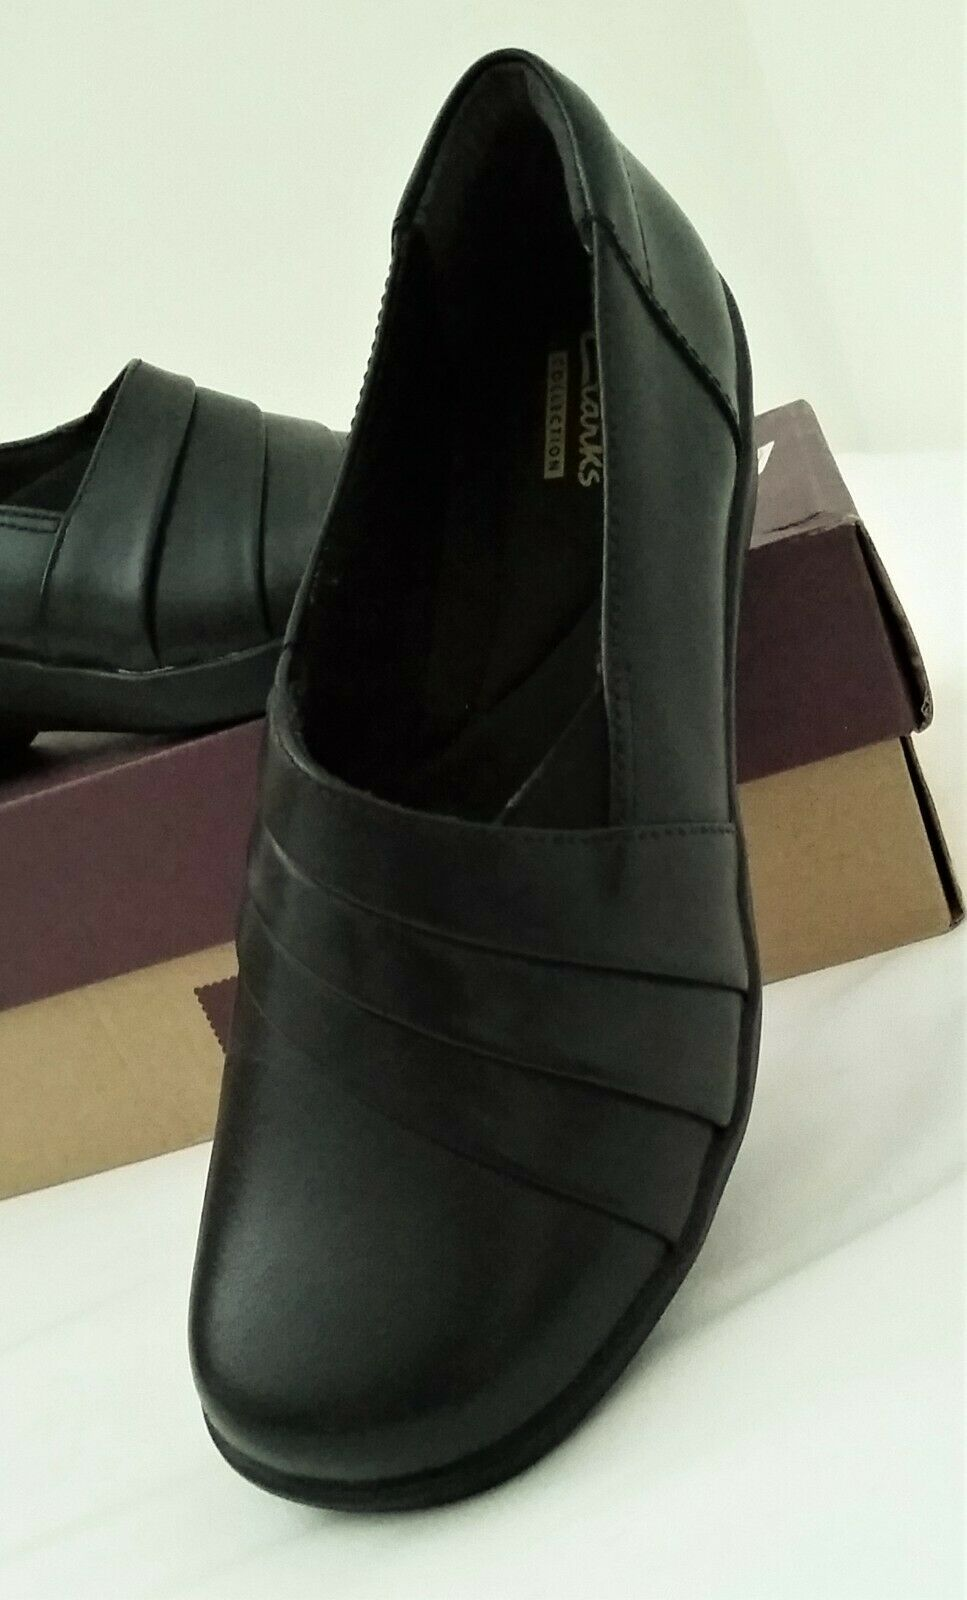 Wish September parent  Clarks Womens Bombay Lights Leather Shoes Black Size 38 for sale online |  eBay